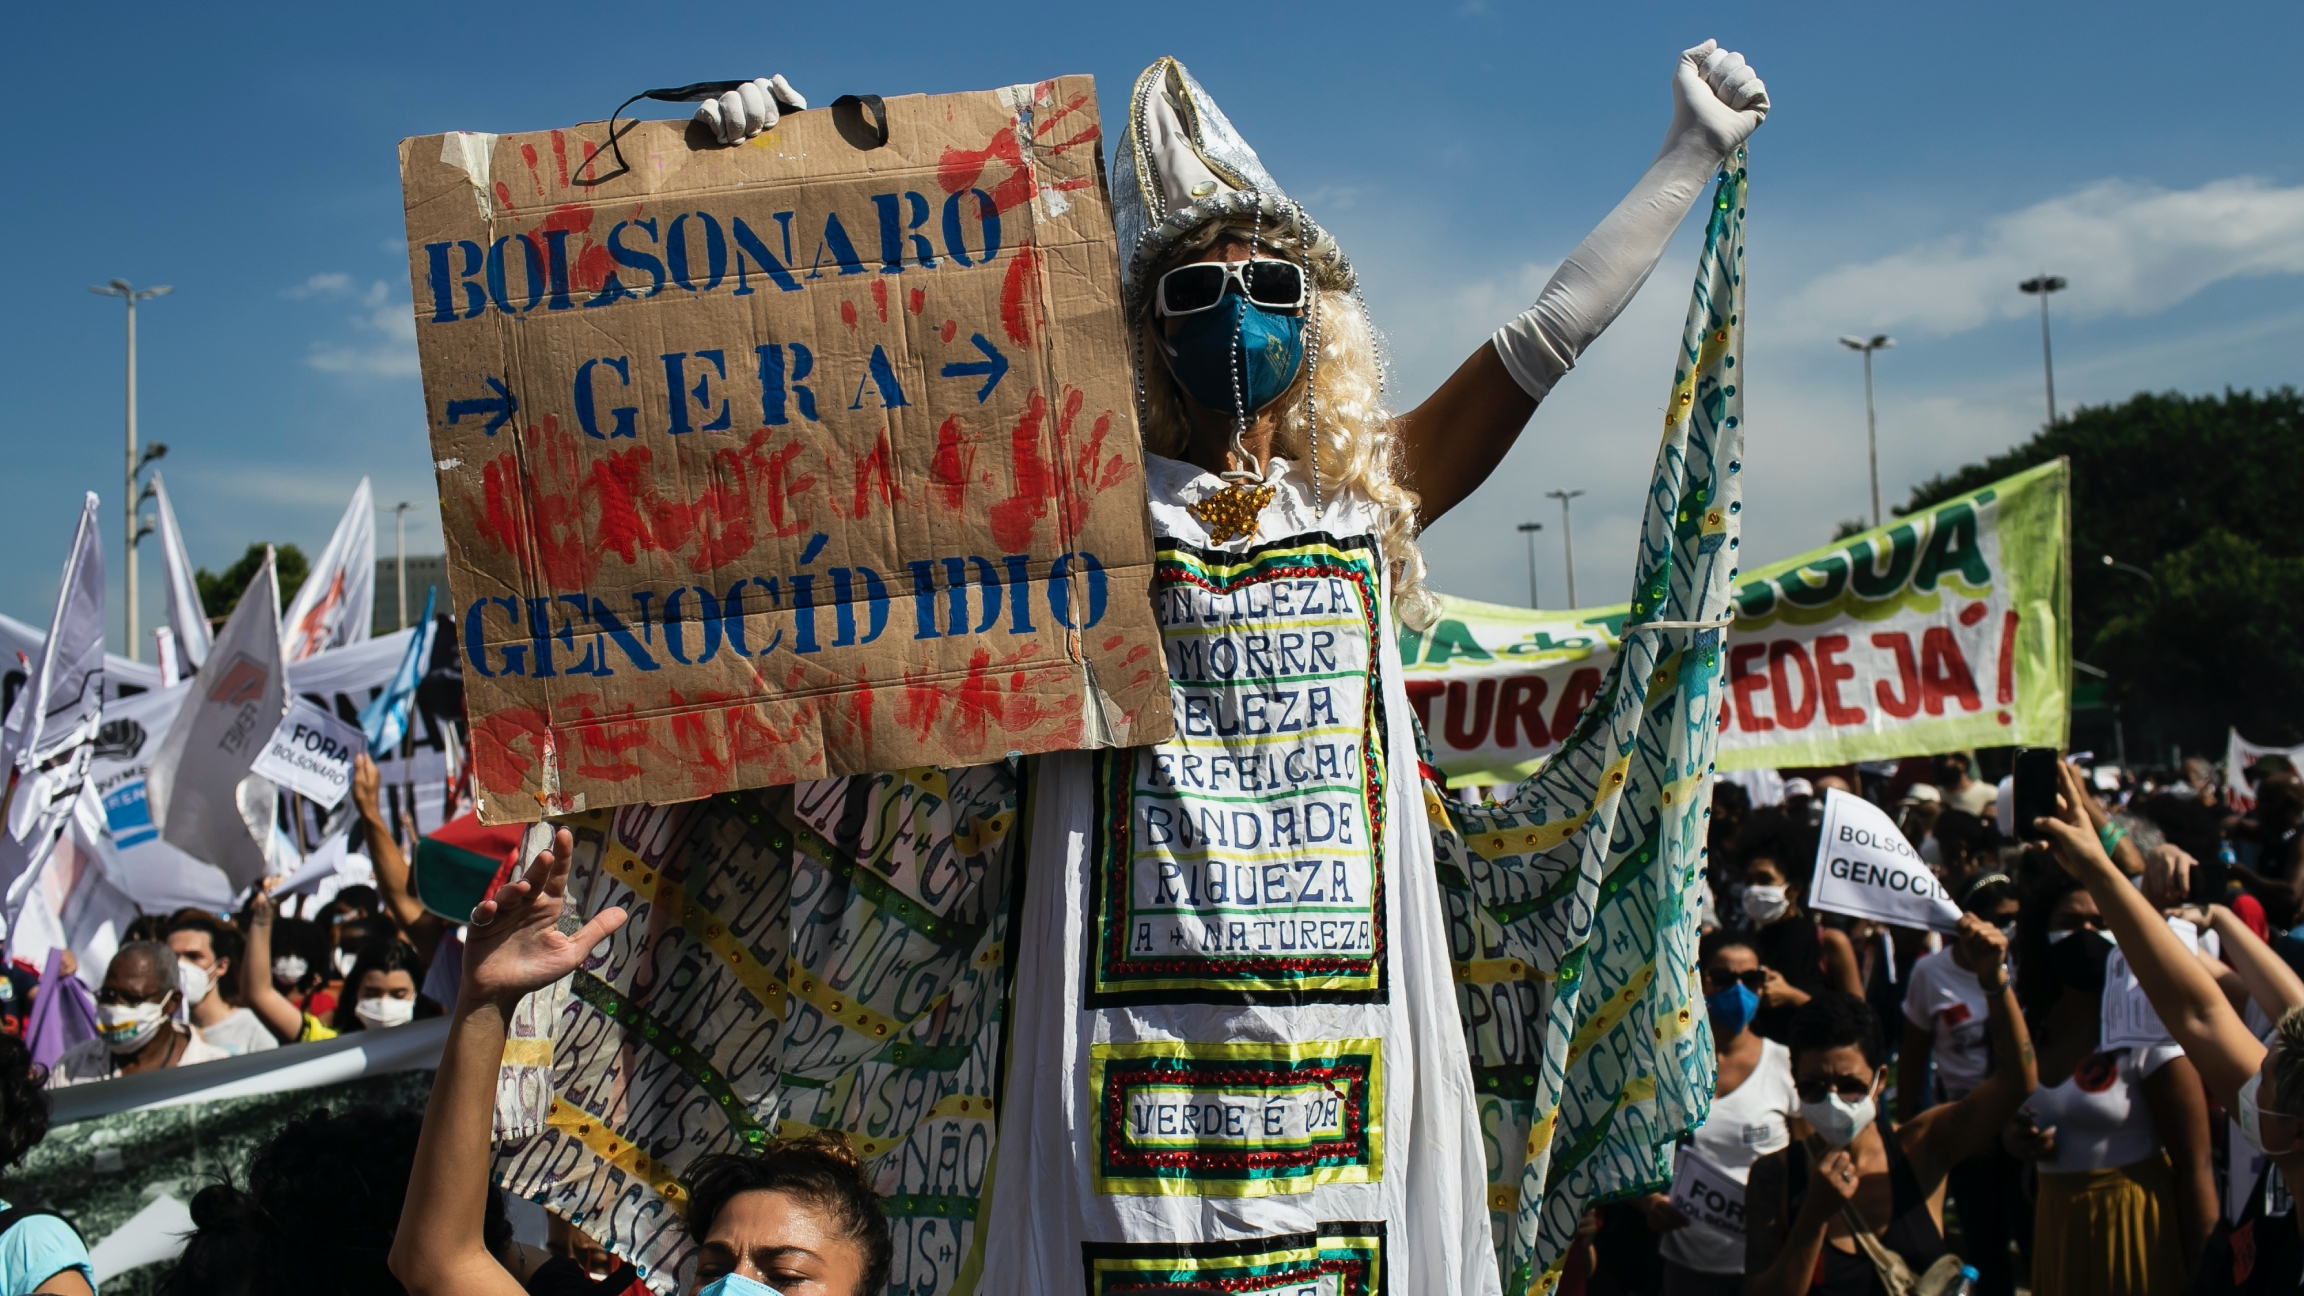 """A man walking on stilts holds a sign with a message that reads in Portuguese: """"Bolsonaro generates genocide"""""""